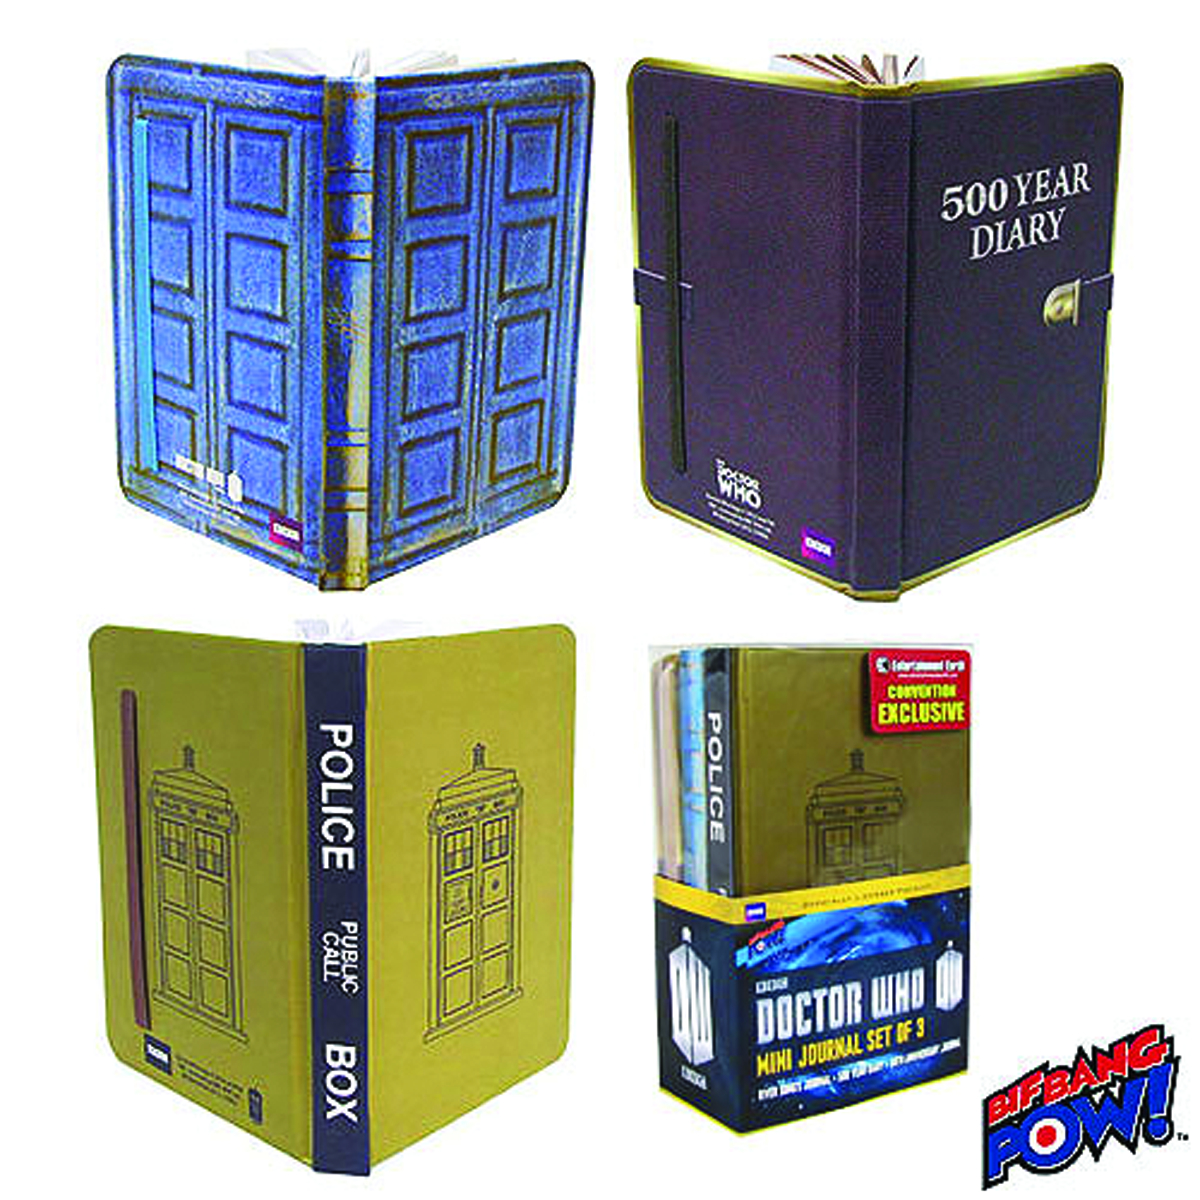 DOCTOR WHO 3PC MINI-JOURNAL SET